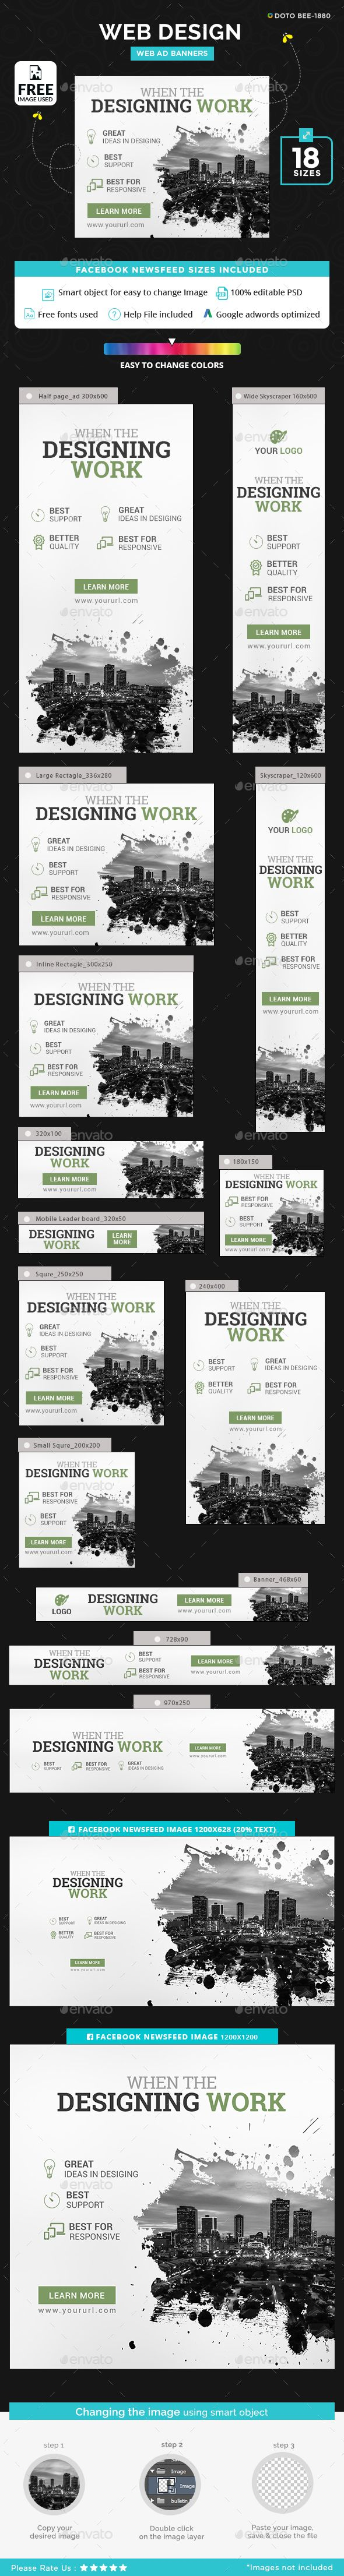 Web Design Banners - Banners & Ads Web Elements Download here : https://graphicriver.net/item/web-design-banners/19293646?s_rank=41&ref=Al-fatih